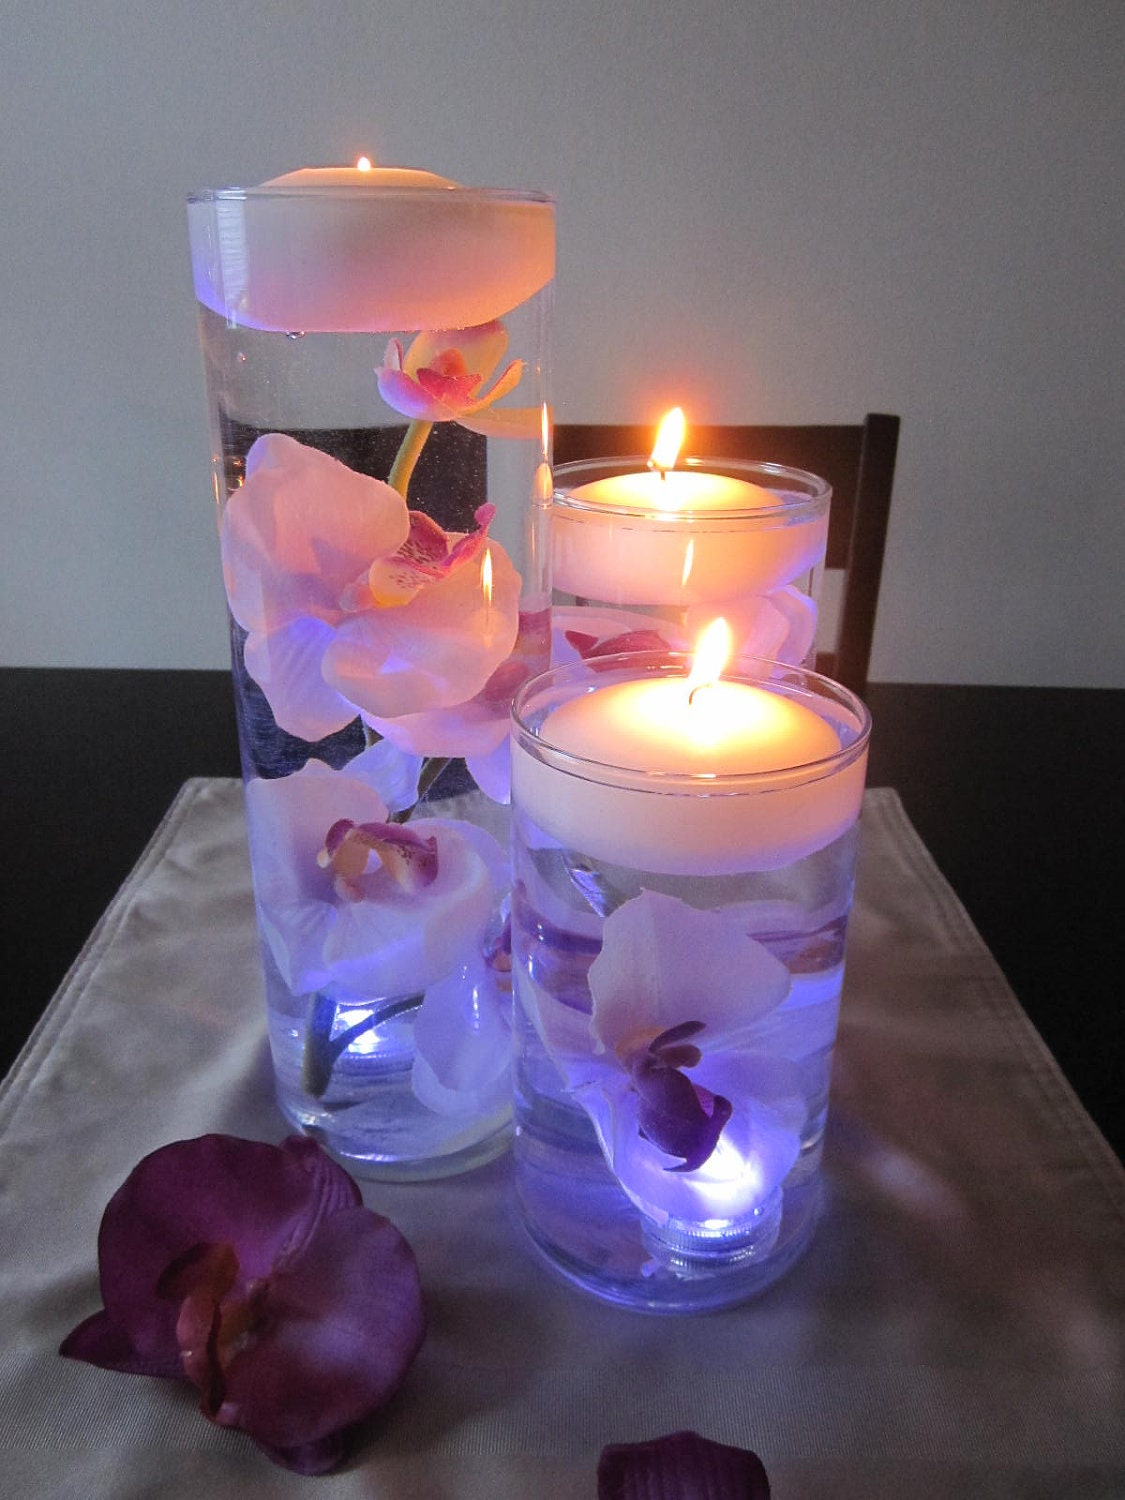 White pink orchid floating candle wedding centerpiece kit led